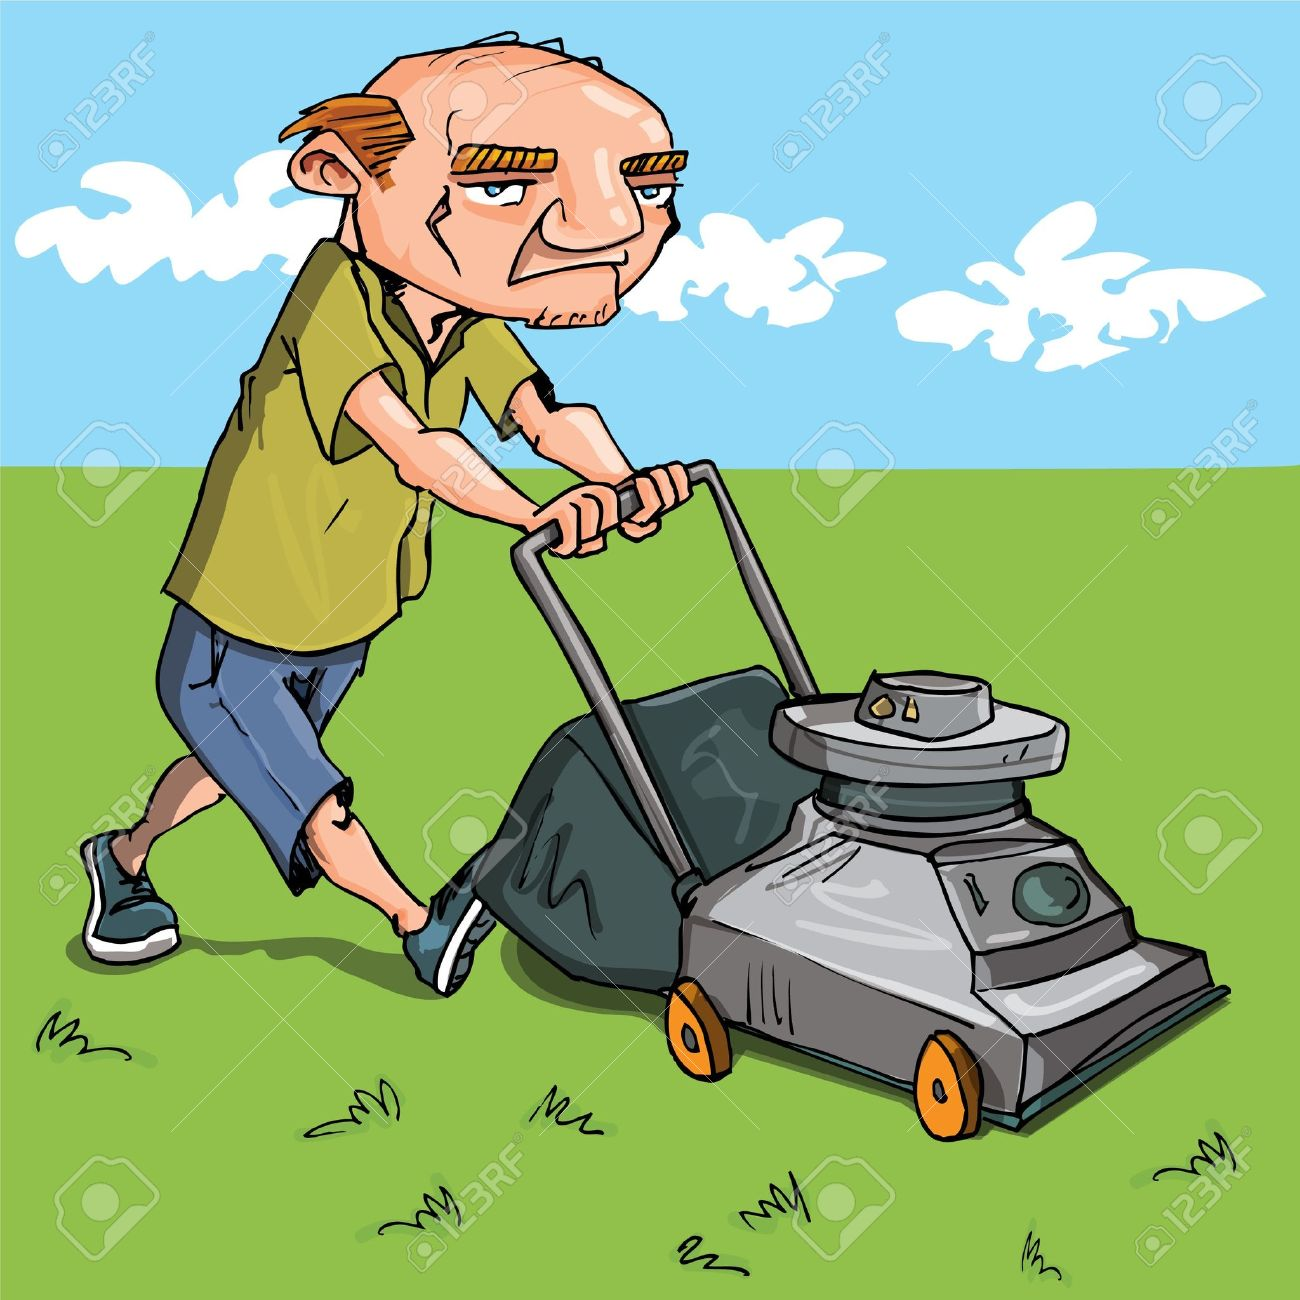 Cartoon man mowing his lawn. Grass and blue sky behind Stock Vector - 9630612